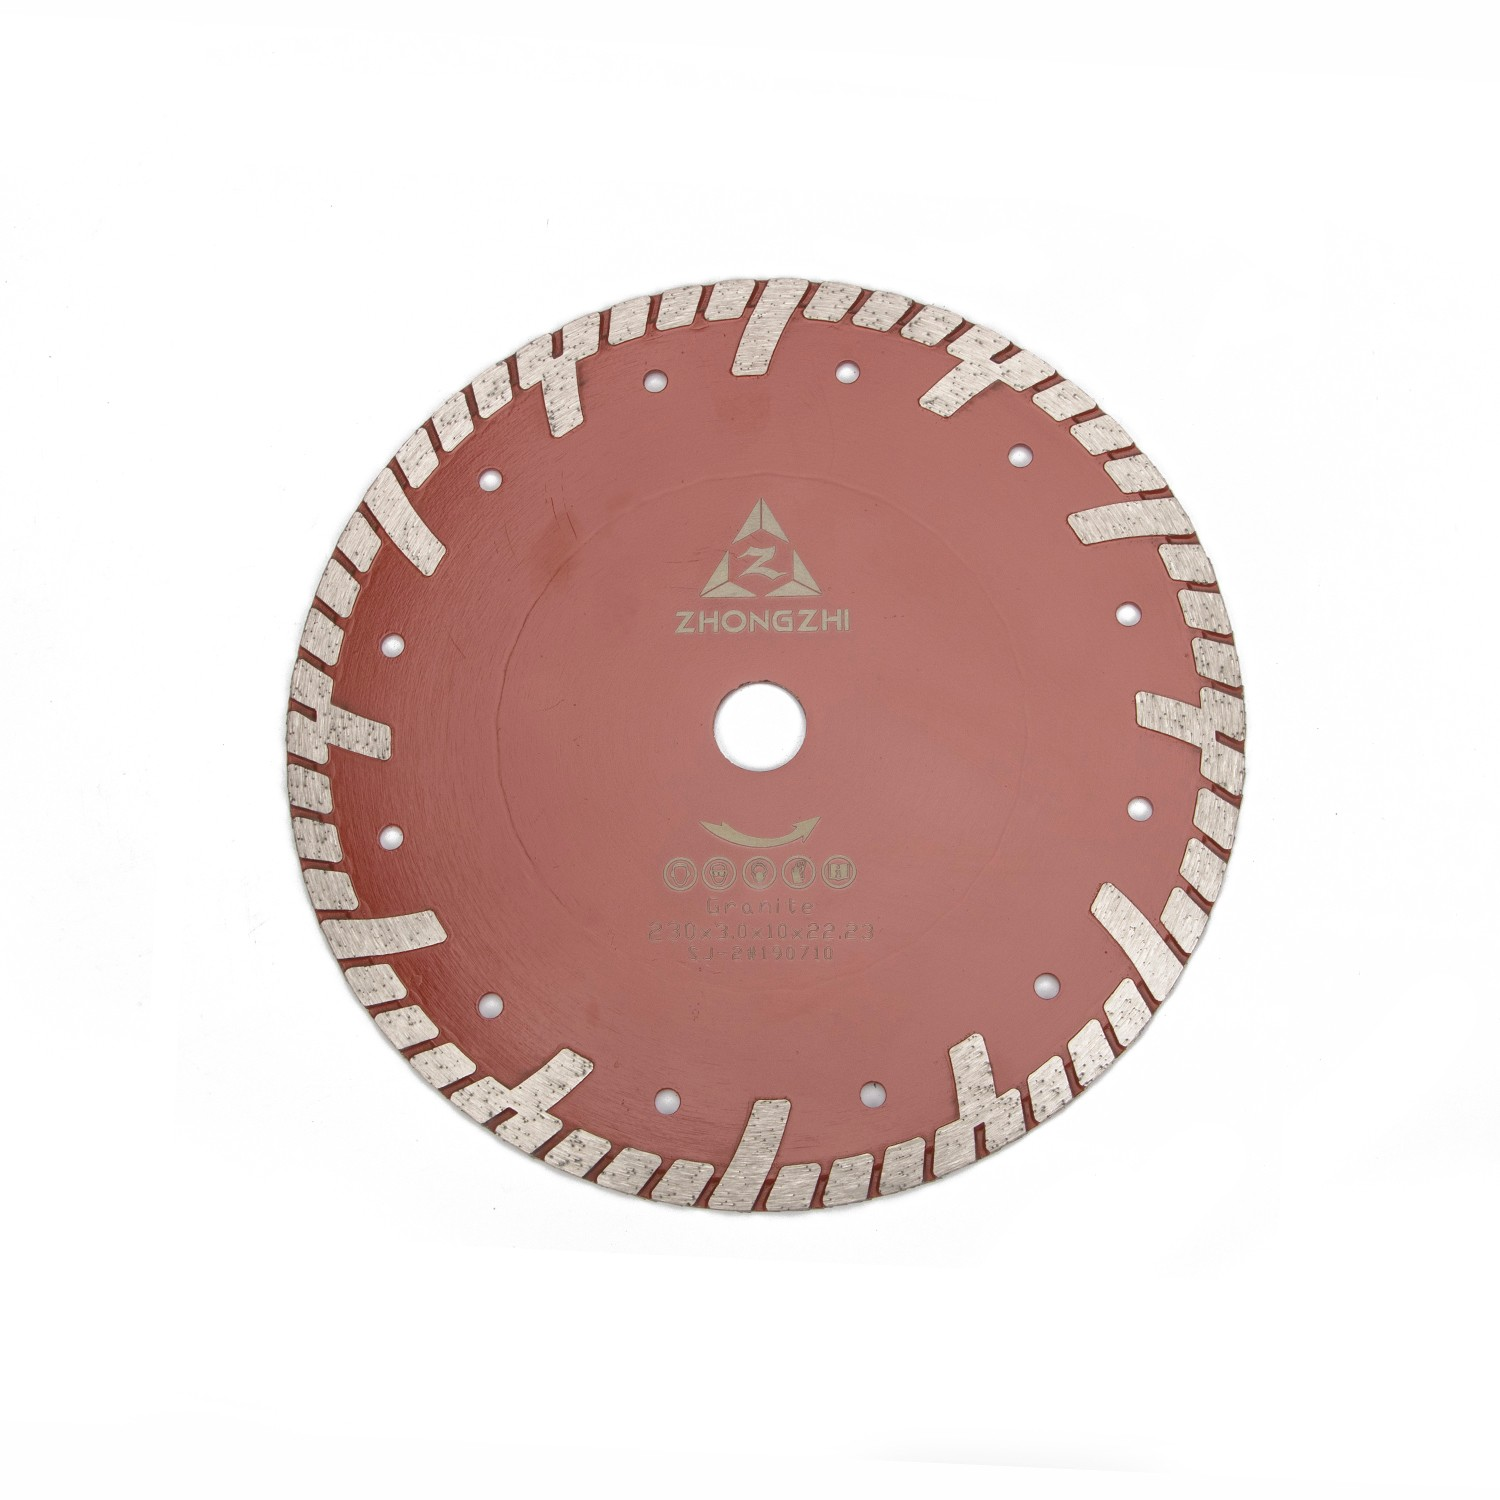 Fast Cutting and Protected Teeth Wide Turbo Rim Blade